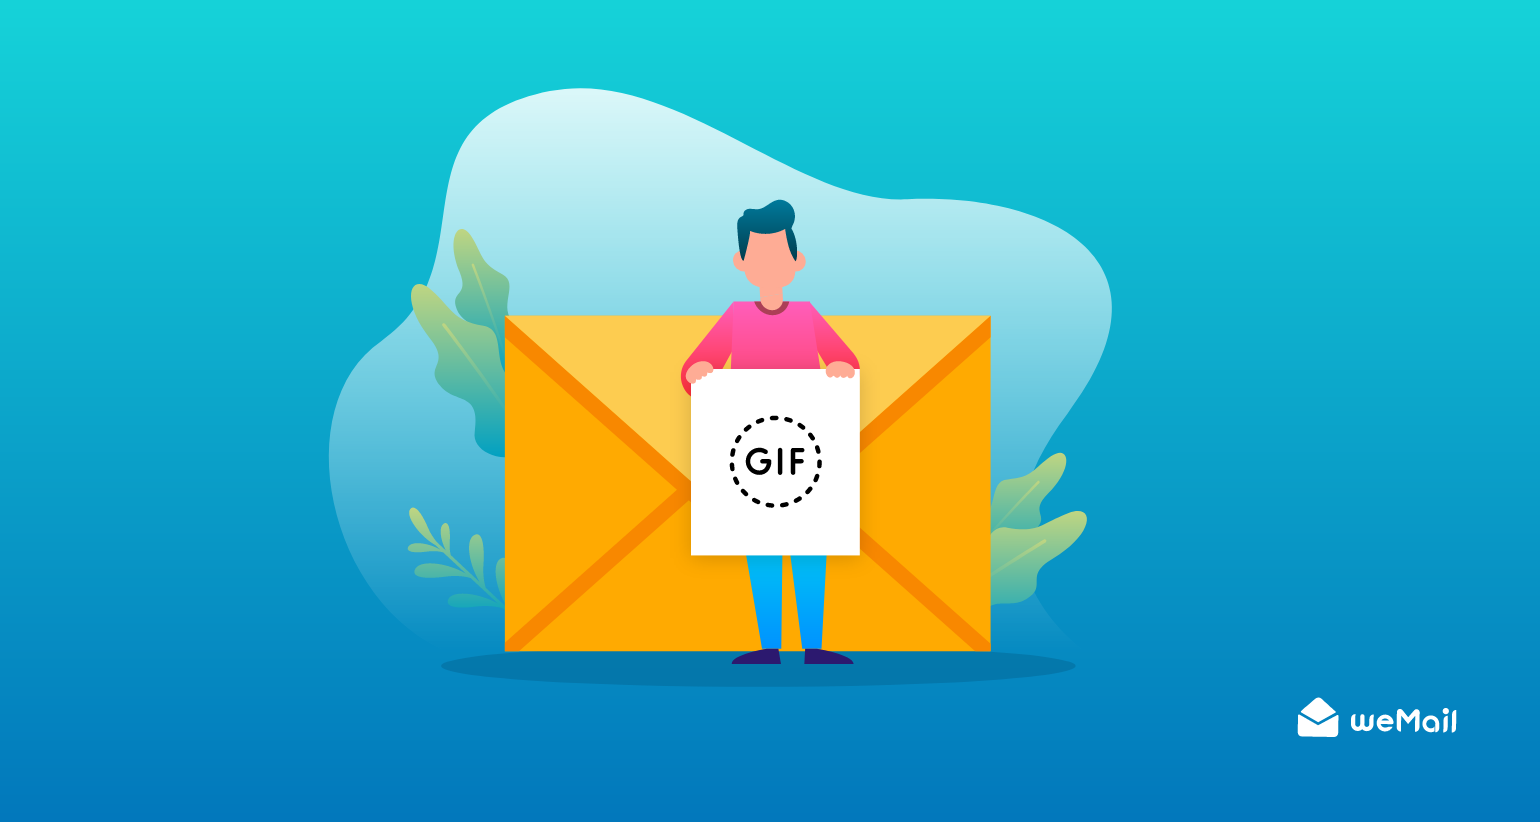 Gifs in email marketing